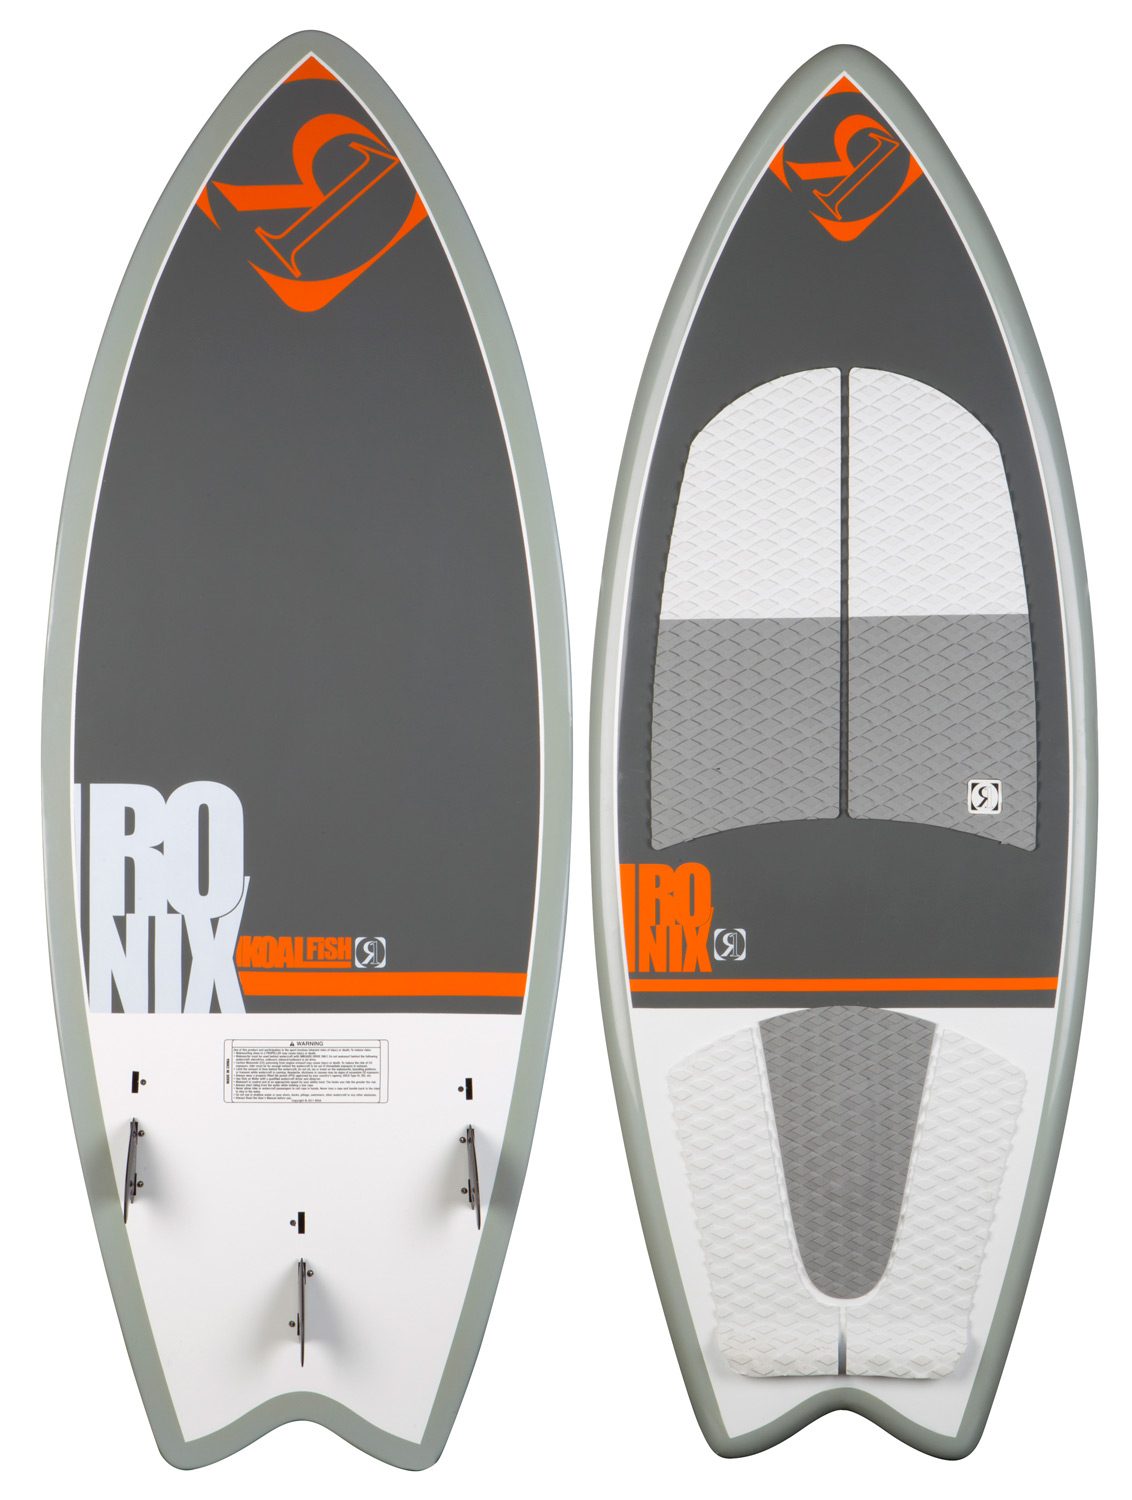 "Surf Over a decade of designing wake surfboards has resulted in our latest version of our top selling Koal series with new adjustable fin options - giving the rider the ability to customize their ride for a tighter or looser feel. A fish profiled ""fun"" board - the Koal can throw the deck on rail with the versatility to break free on the top of the wake, yet still has the versatility to throw a bucket on the lip with it's reactive 3 fin recessed fin block and fast profile. This speedy shape rides high on the water with a full rail and our exclusive surf constructed core creating more glide speed. The Koal's shape and construction is a perfect ride for inlanders looking for a universal ride with wake slashing performance. Available in 3 lengths covering the spectrum of riders and wake sizes. Throw your fin screws away - the Koal series comes with cleaner profiled fins that have a fin box recessed right into the board.Key Features of the Ronix Koal Fish Wakesurfer: Machined EVA top deck with built in tail wedge A fast rocker line, with a hard edging/stable profile and rail design Surf specific 2.9"" bottom mount fins Surf constructed - lighter, faster, more buoyant, and yes more fragile (handle with care) Epoxy Construction - harder resin equals a stronger board The soul of surfing is ridden by the former WWA World Champion Dean Smith and WWA National Champion Adam Errington - $499.99"